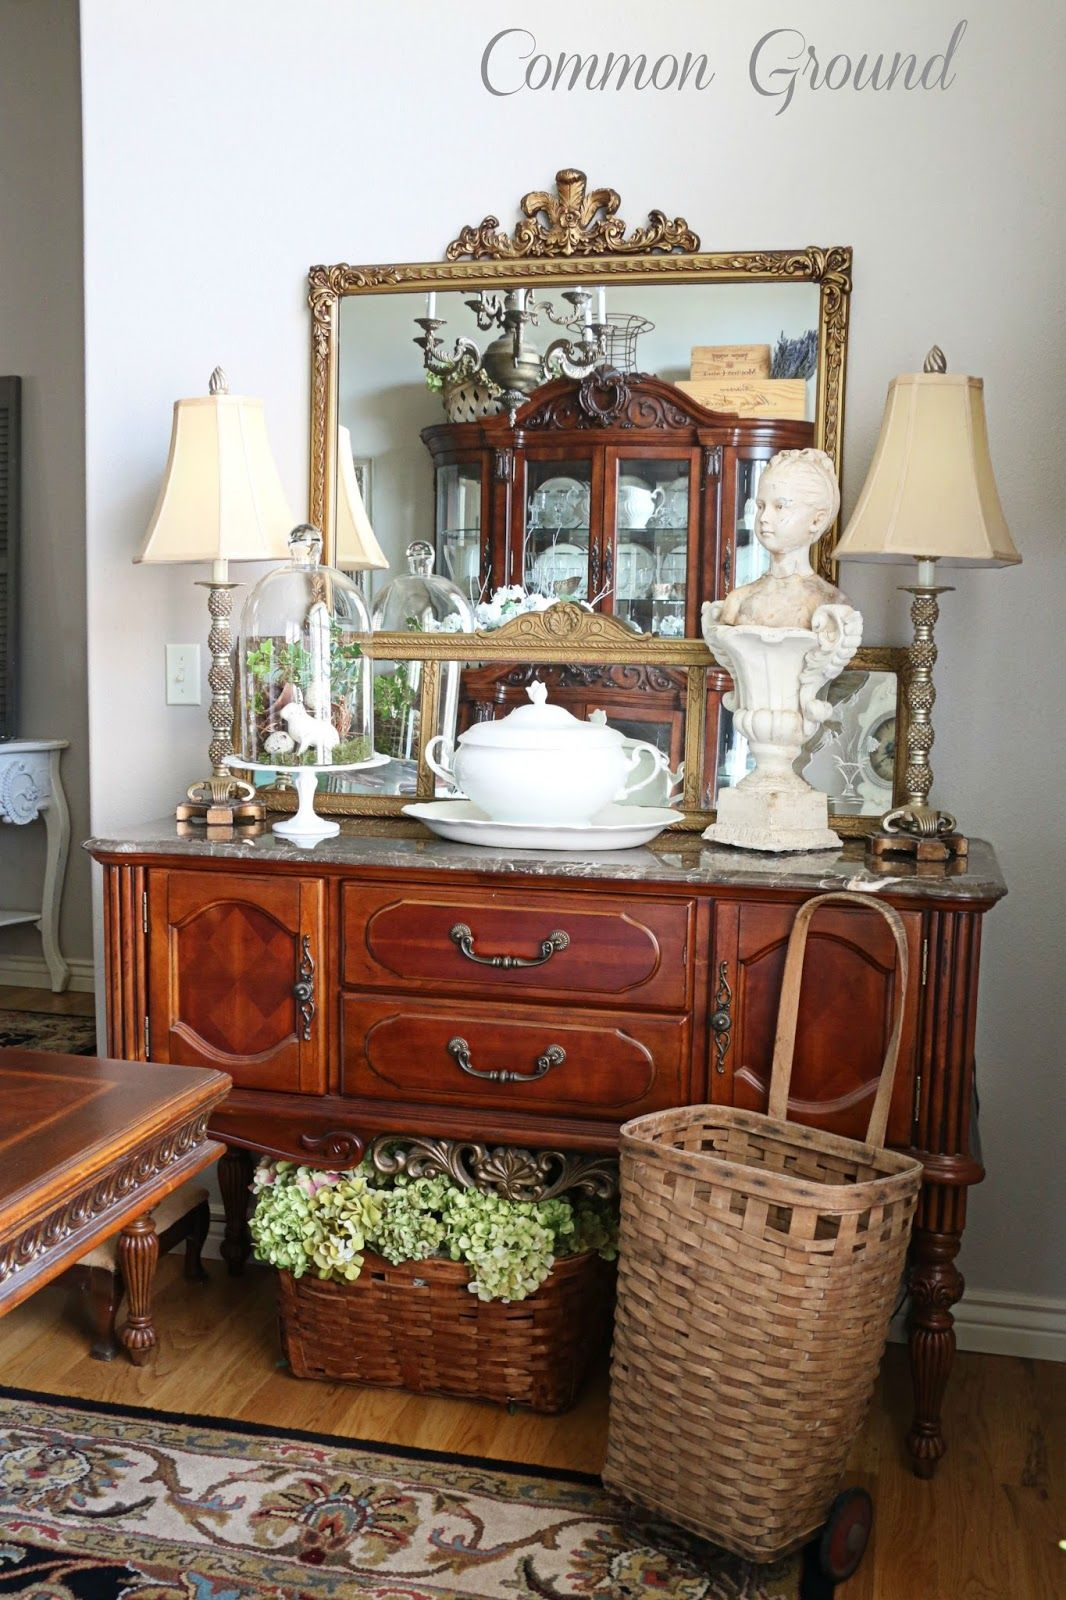 common ground : Dining Room Buffet and a new Tablerunner